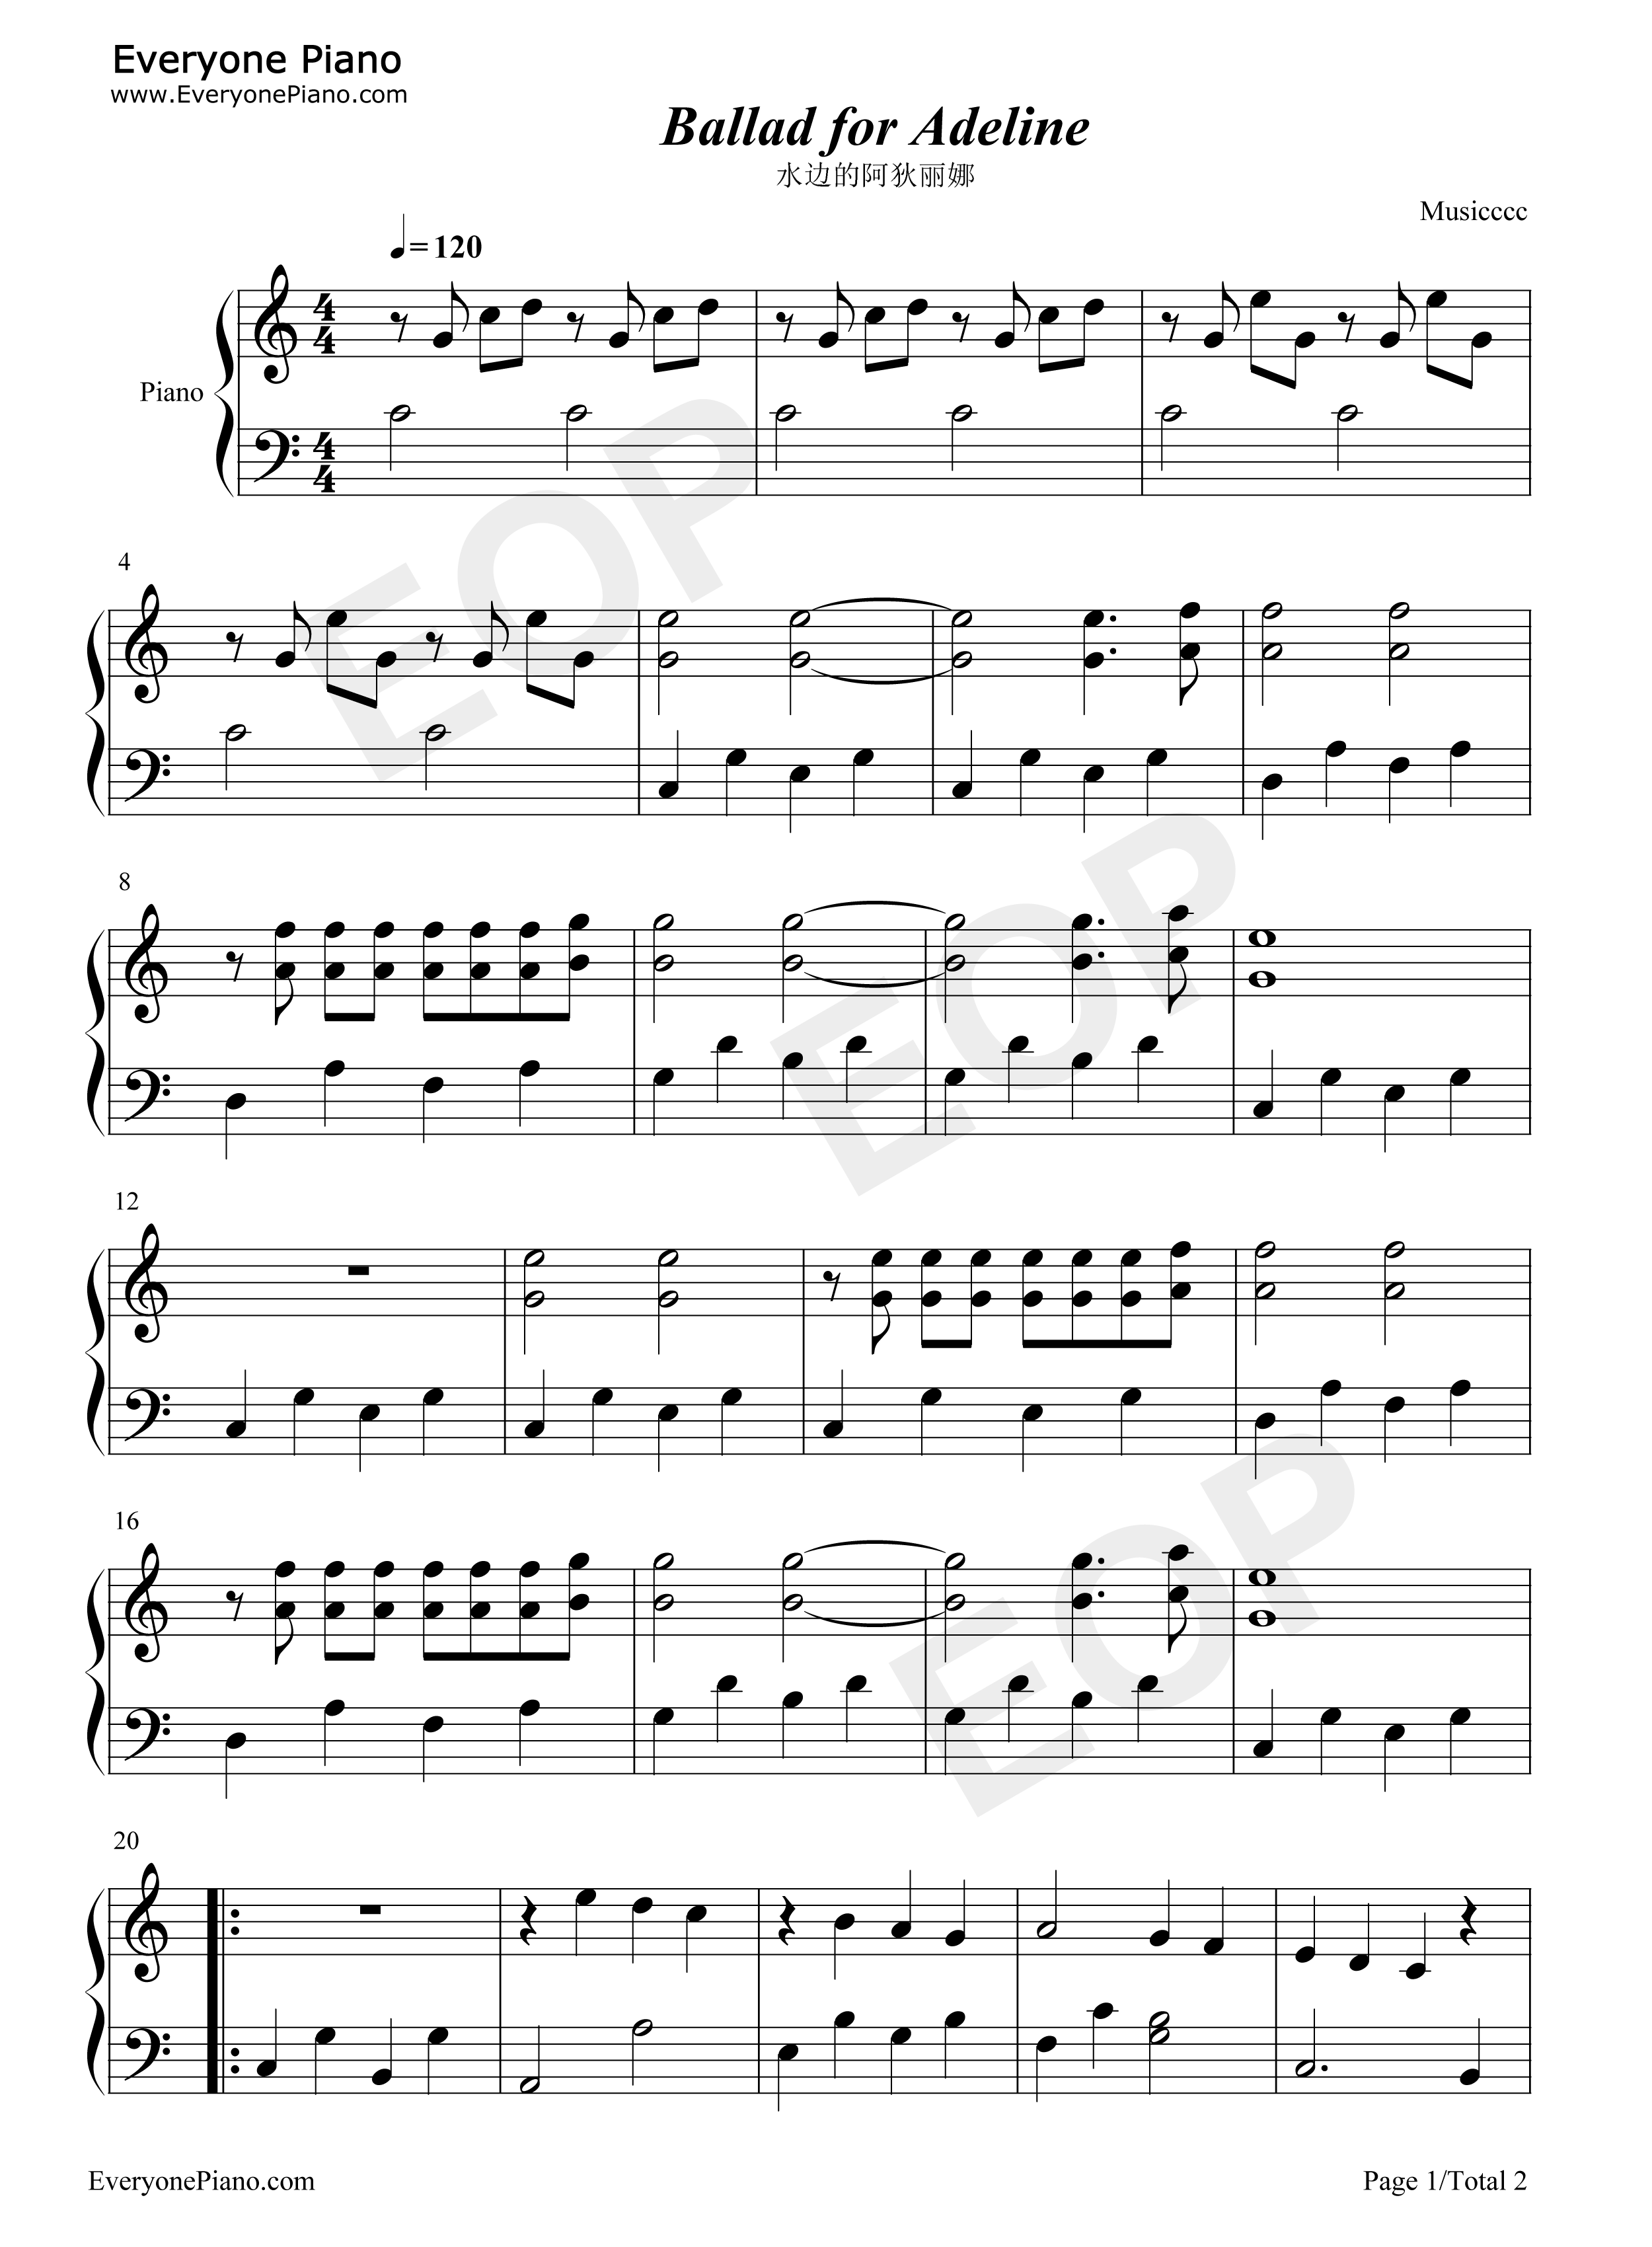 Ballade pour Adeline-Ballad for Adeline Stave Preview 1-Free Piano Sheet Music u0026 Piano Chords